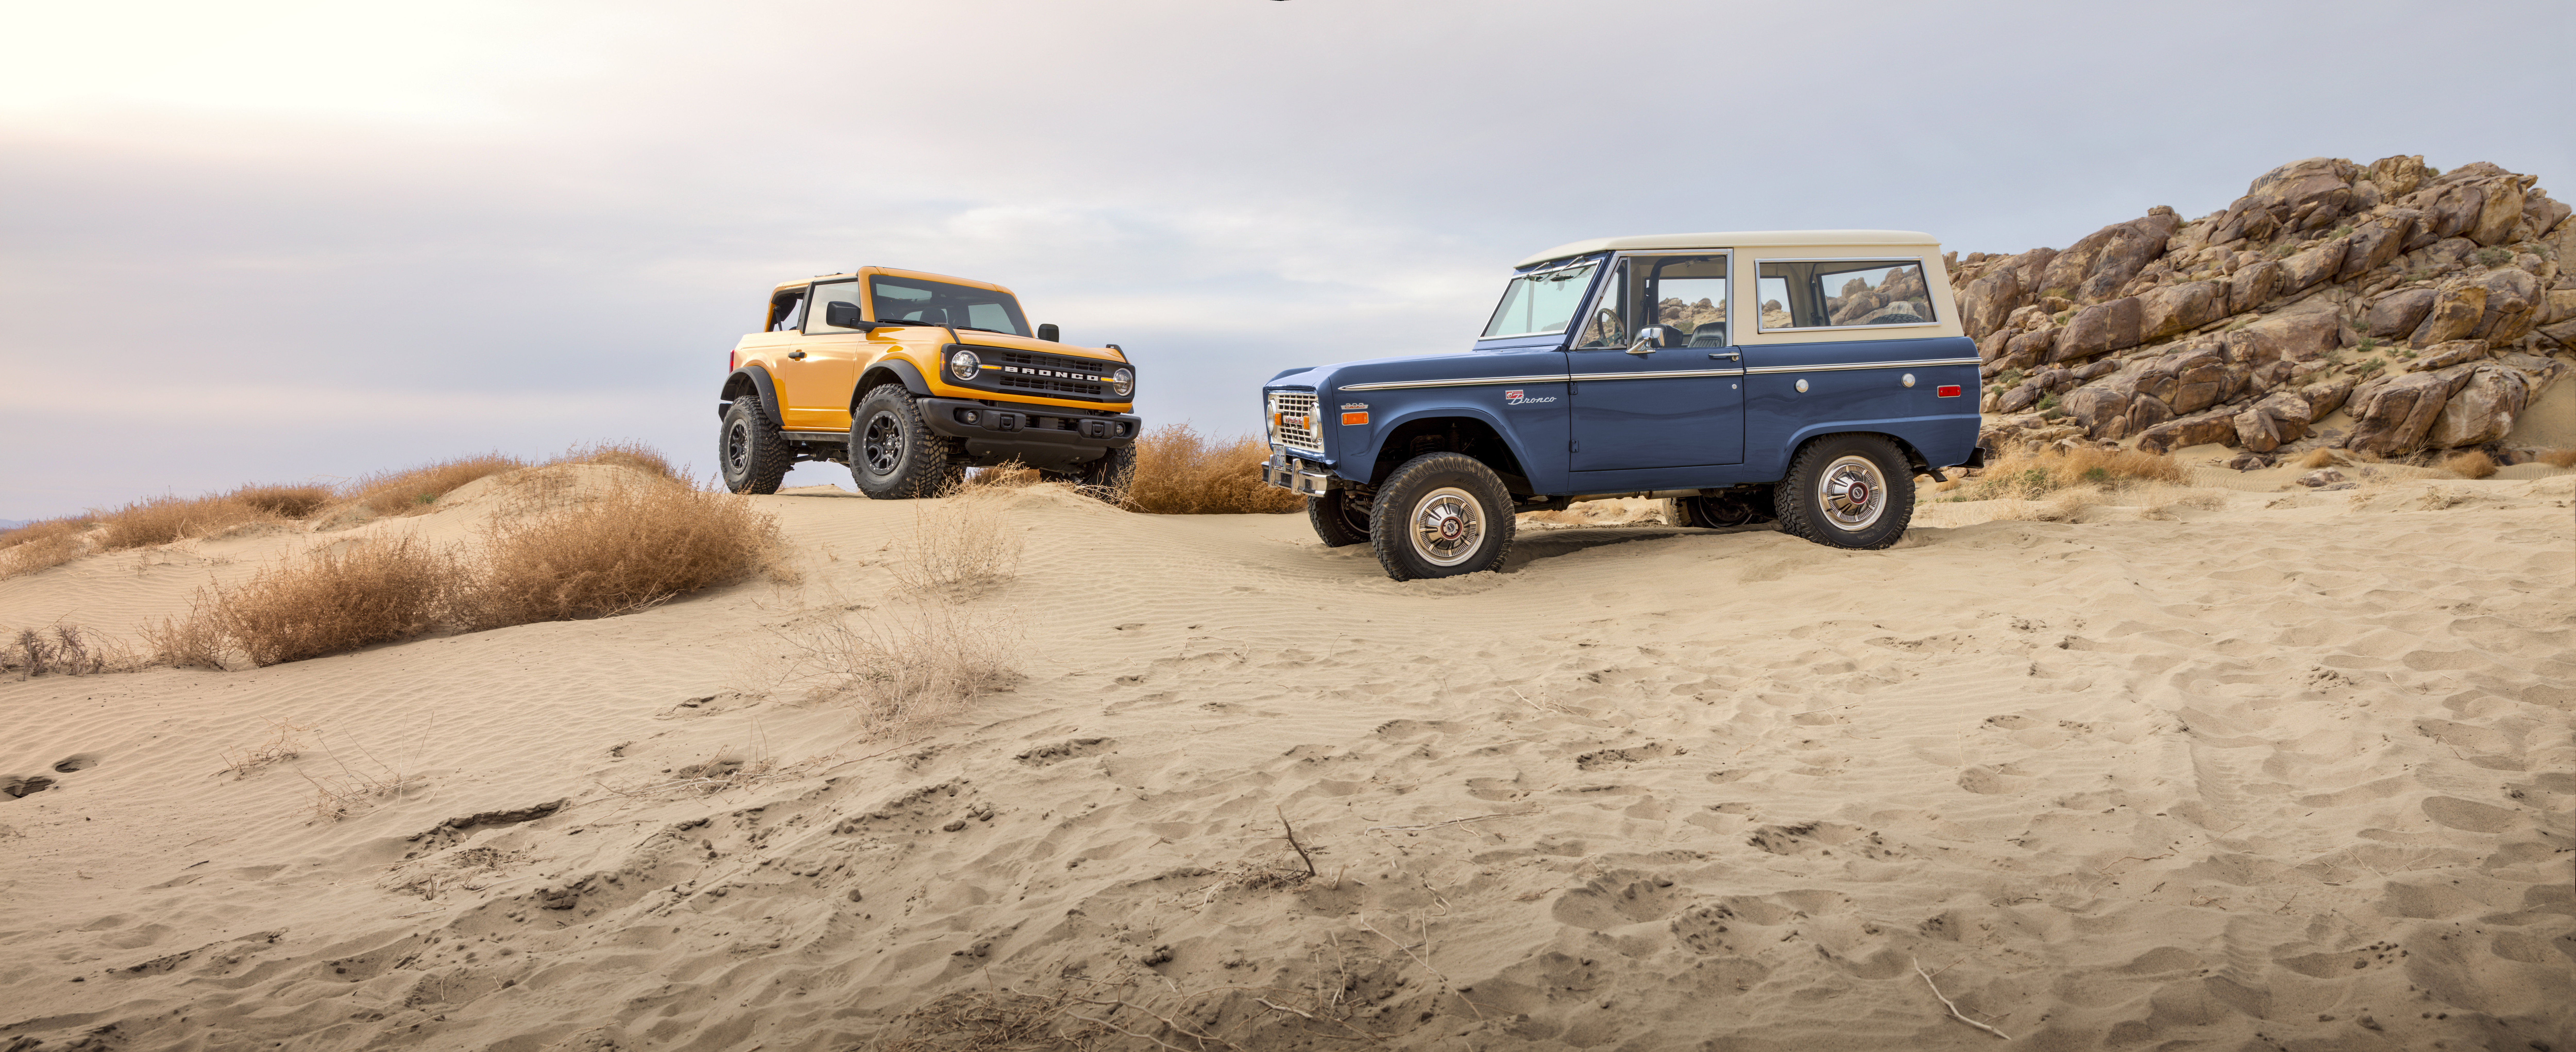 Sixth-generation Ford Bronco debuts – two EcoBoost petrols, removable panels and washable interior Image #1145040